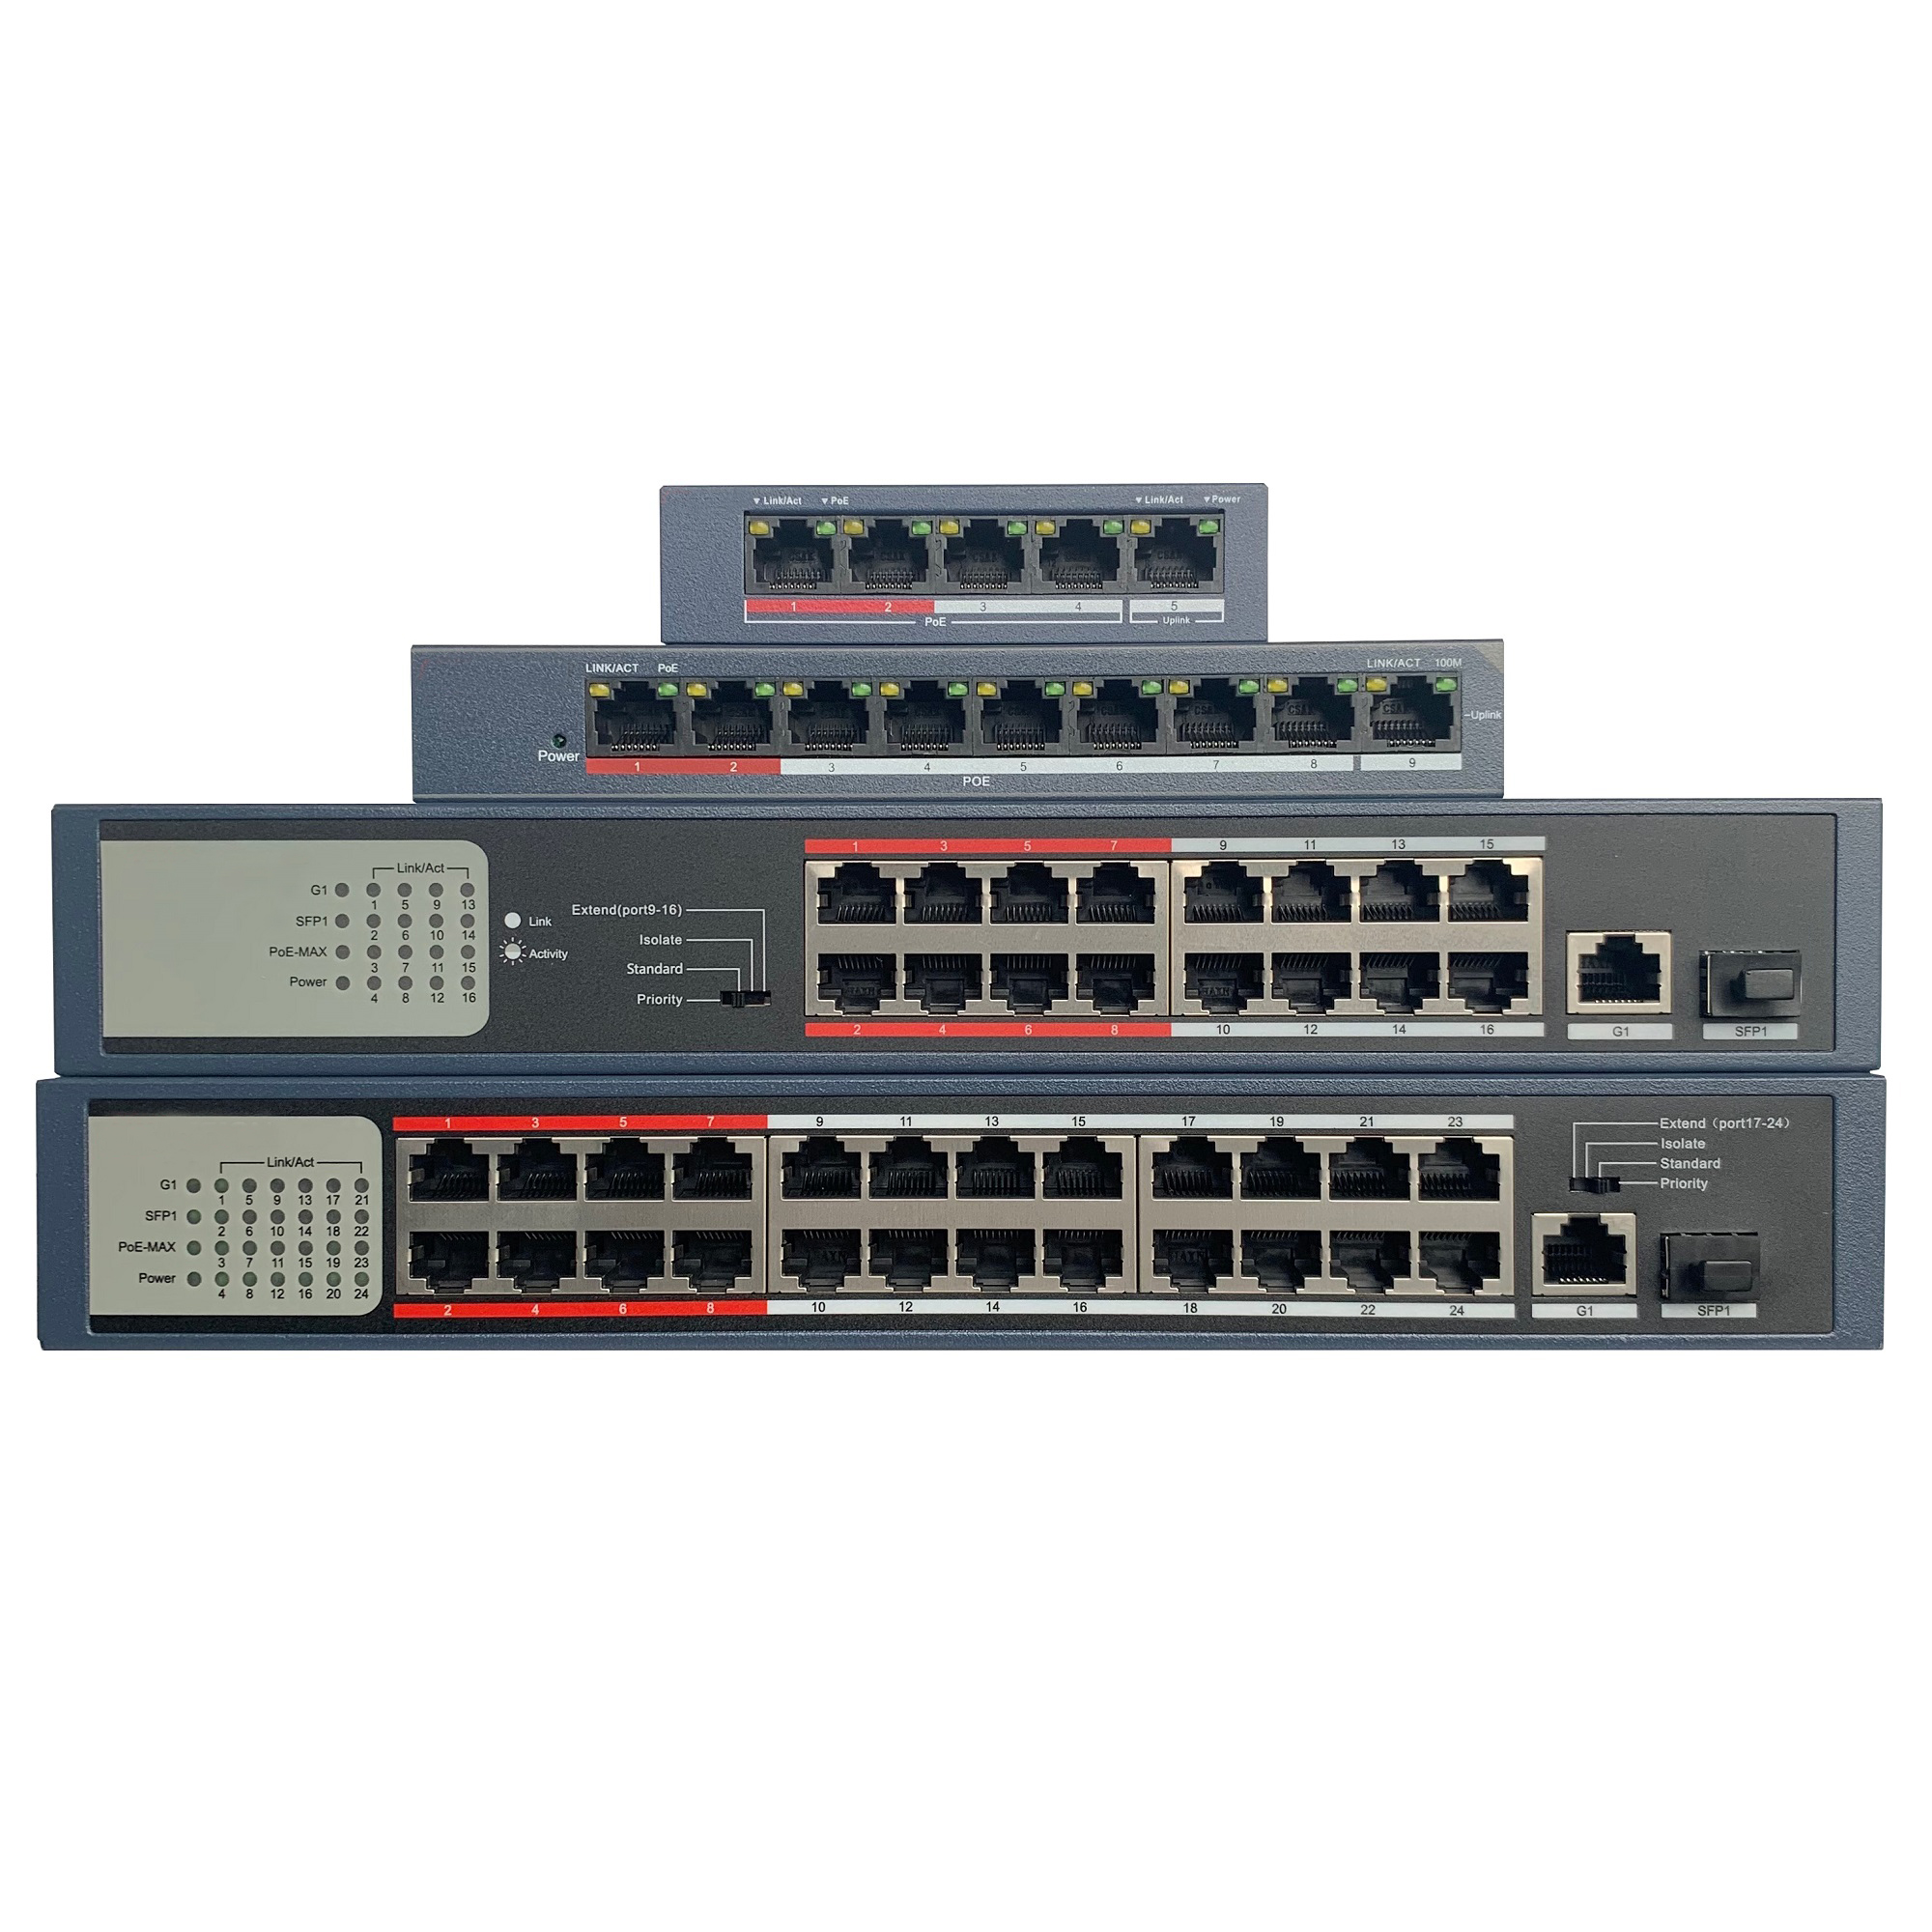 HIK With Logo 4CH 8CH 16CH 24CH PoE LAN Network Switch, DS-3E0105P-E/M  DS-3E0109P-E/M  DS-3E0318P-E/M  DS-3E0326P-E/M Economic